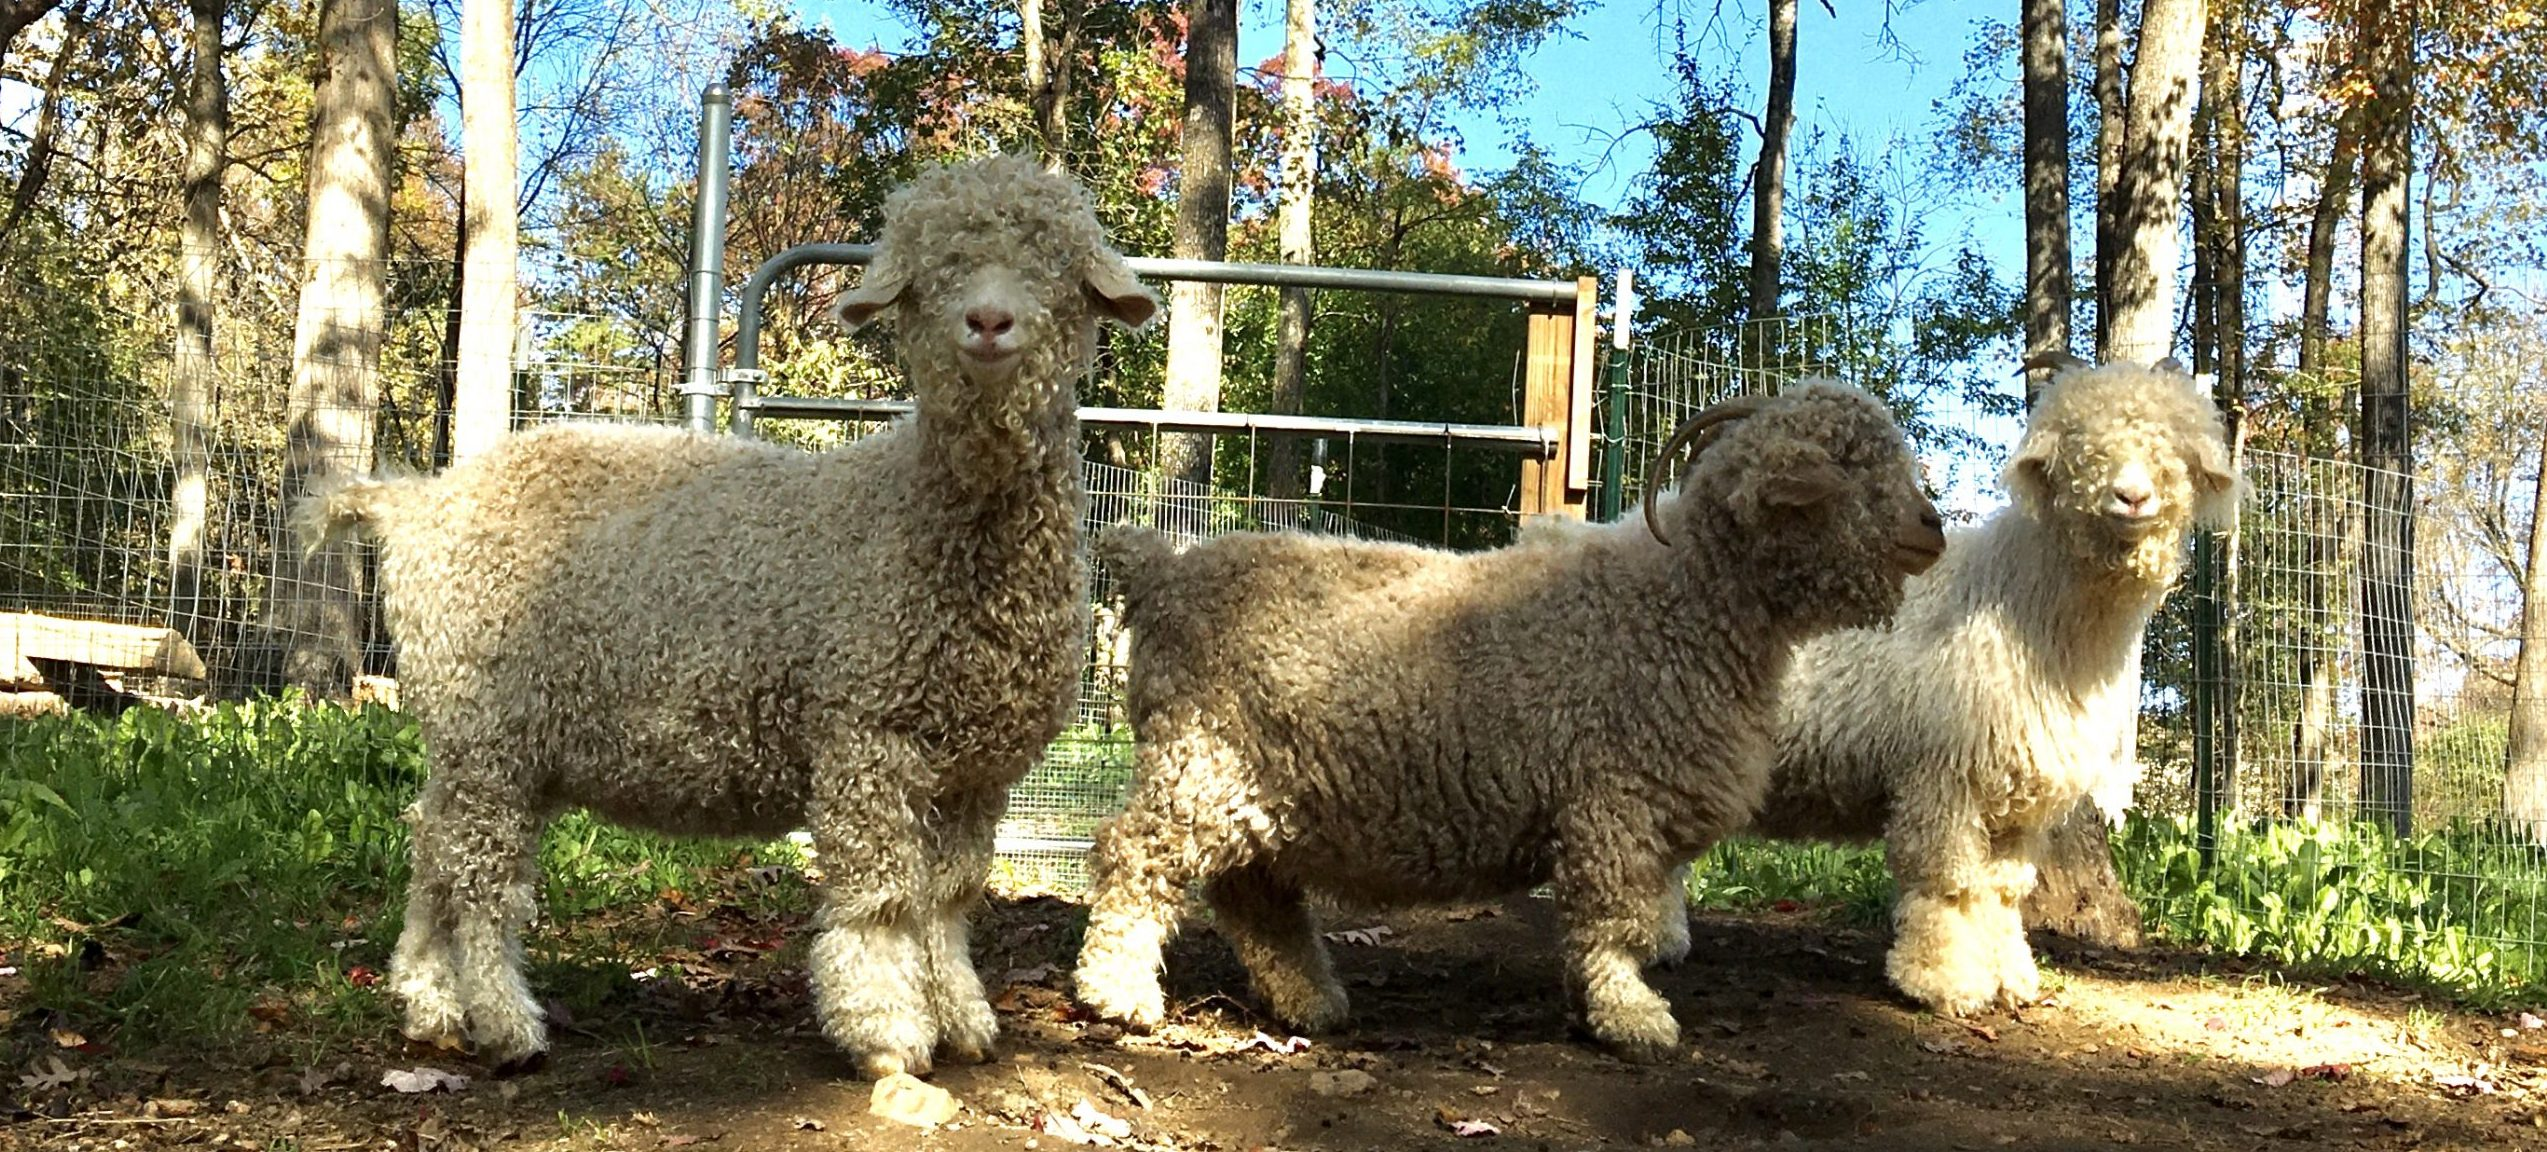 Three angora goats hanging out in the shade of trees